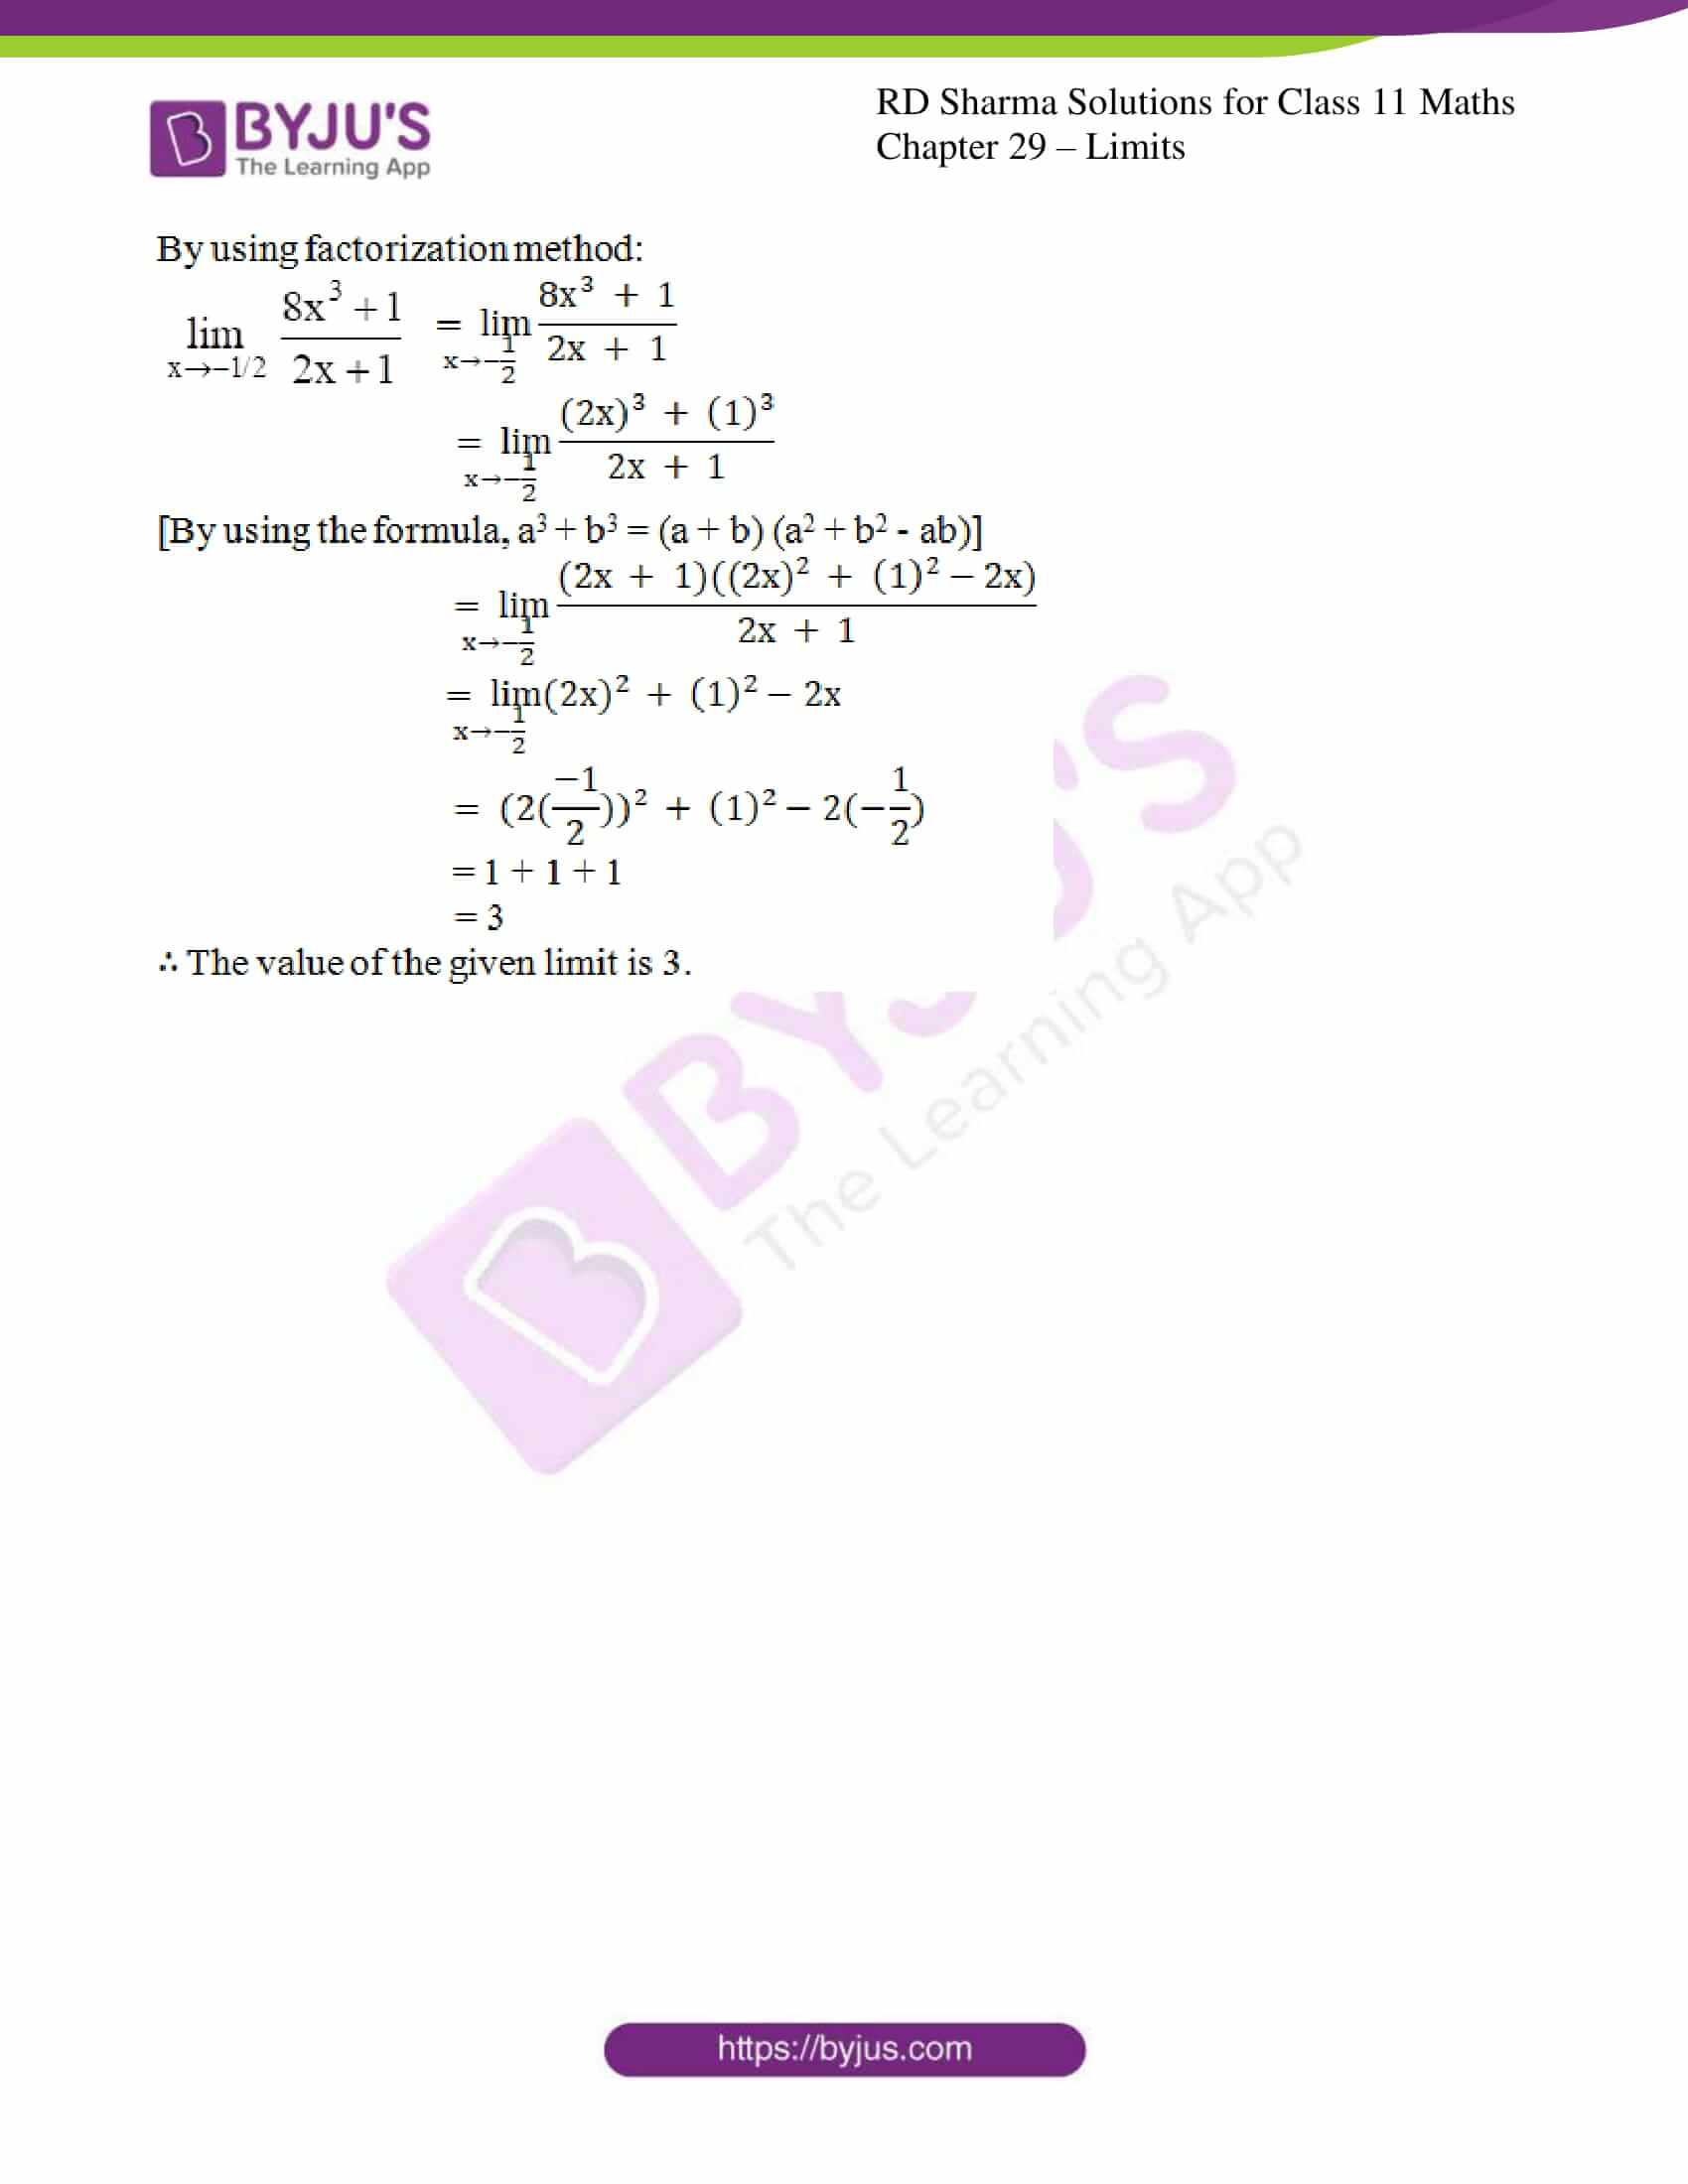 rd sharma class 11 maths chapter 29 ex 3 5